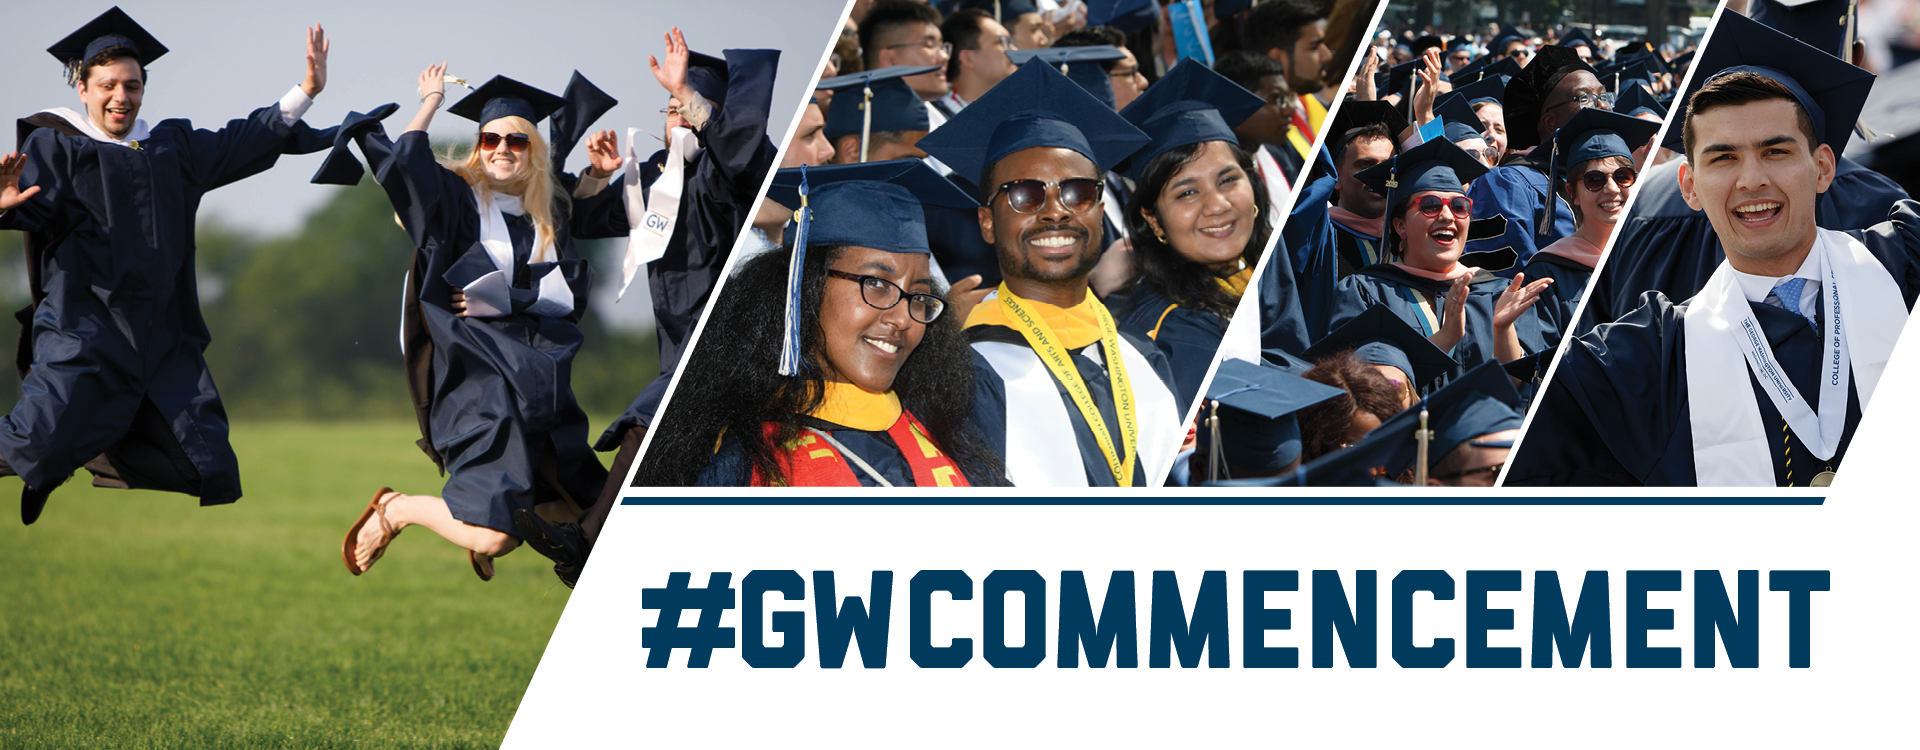 #GWCommencement; happy groups of graduates in regalia celebrating on the National Mall